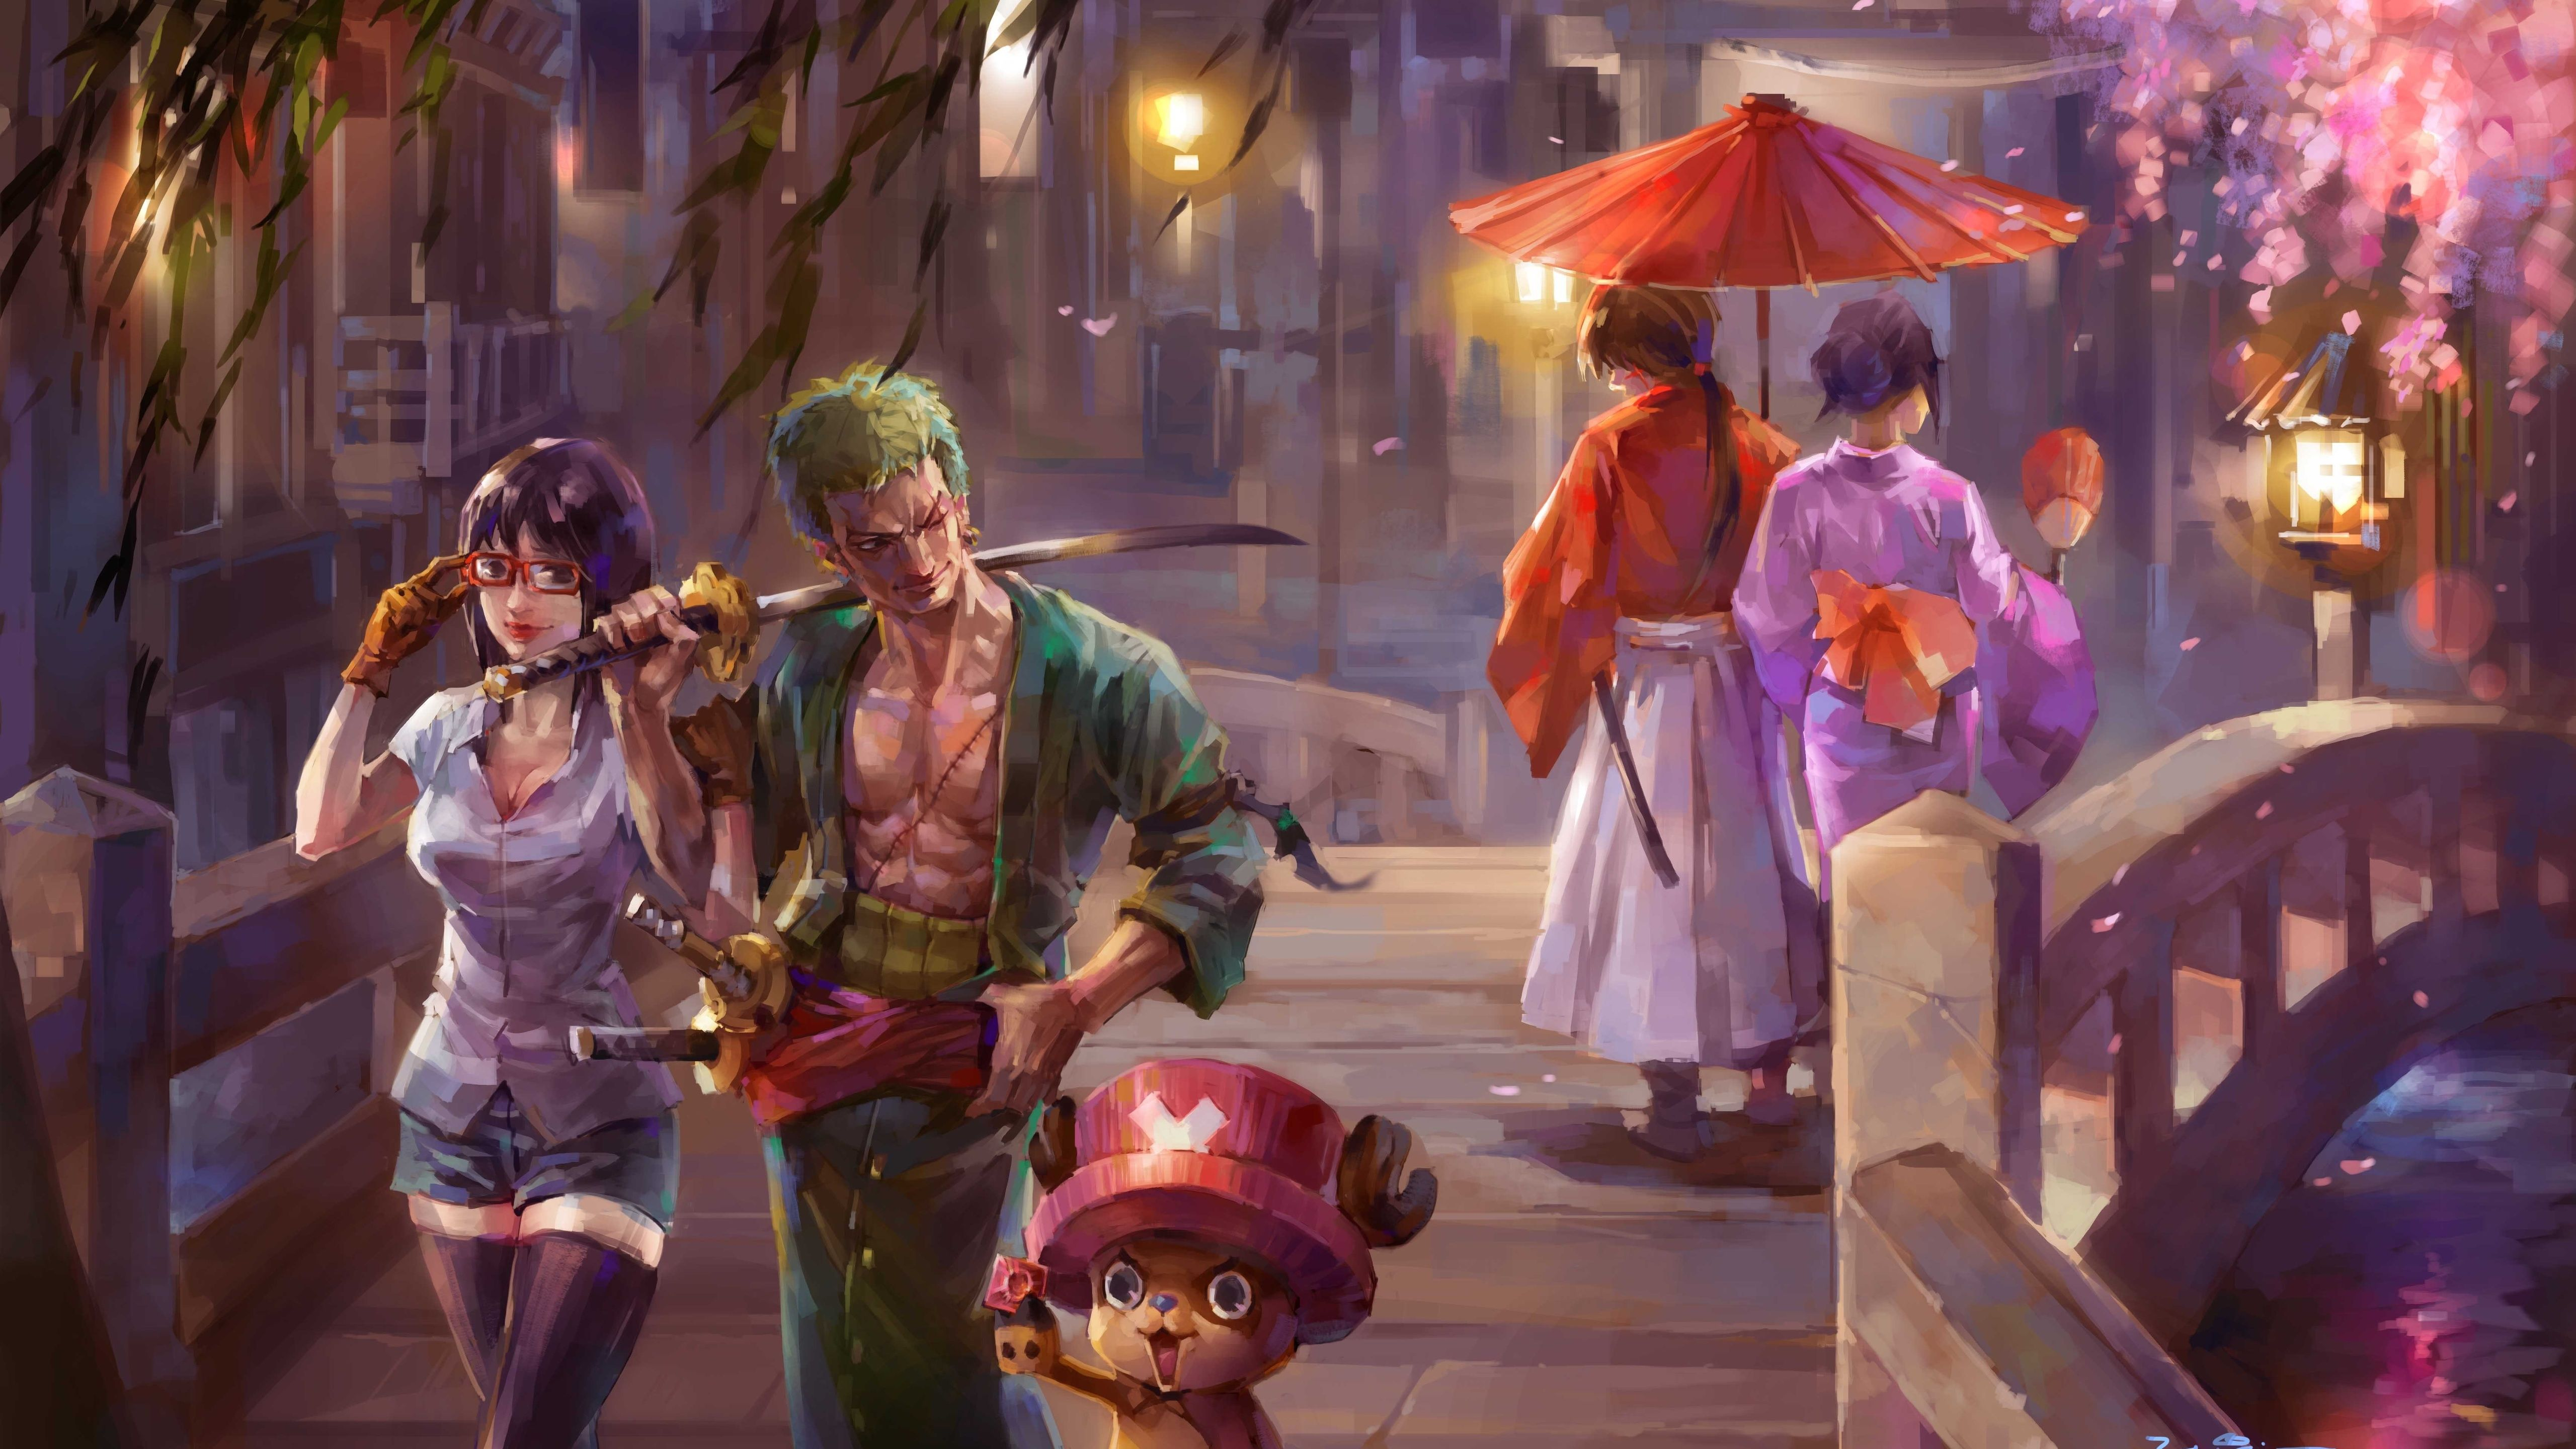 5120x2880 One Piece Painting 5k 5k Hd Rurouni Kenshin One Piece Anime One Piece Crossover